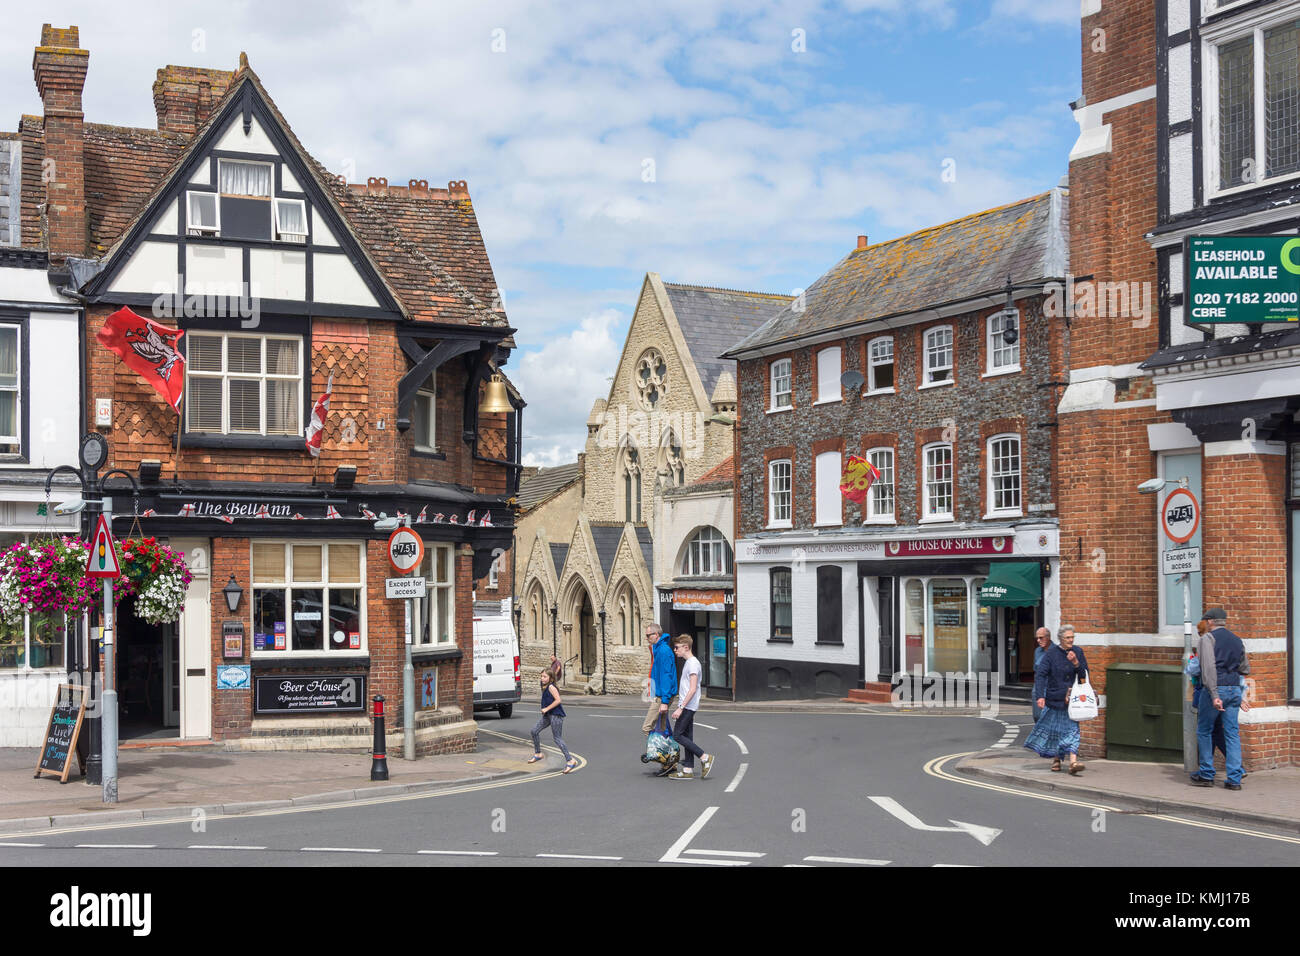 Mill Street from Market Place, Wantage, Oxfordshire, England, United Kingdom - Stock Image